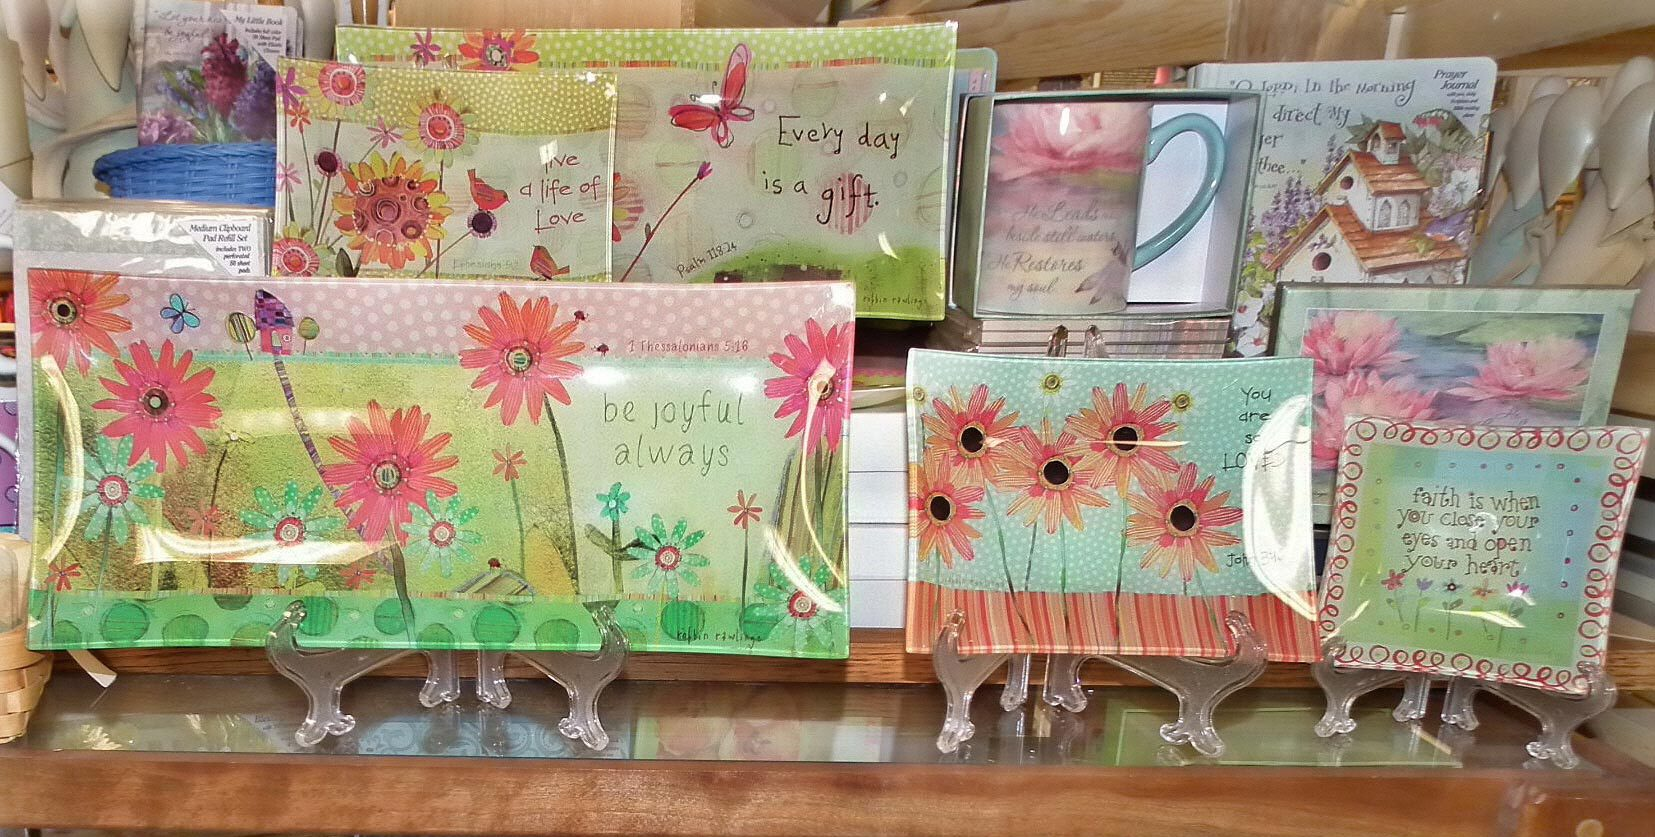 Gift Ideas at The Cross Eyed Owl